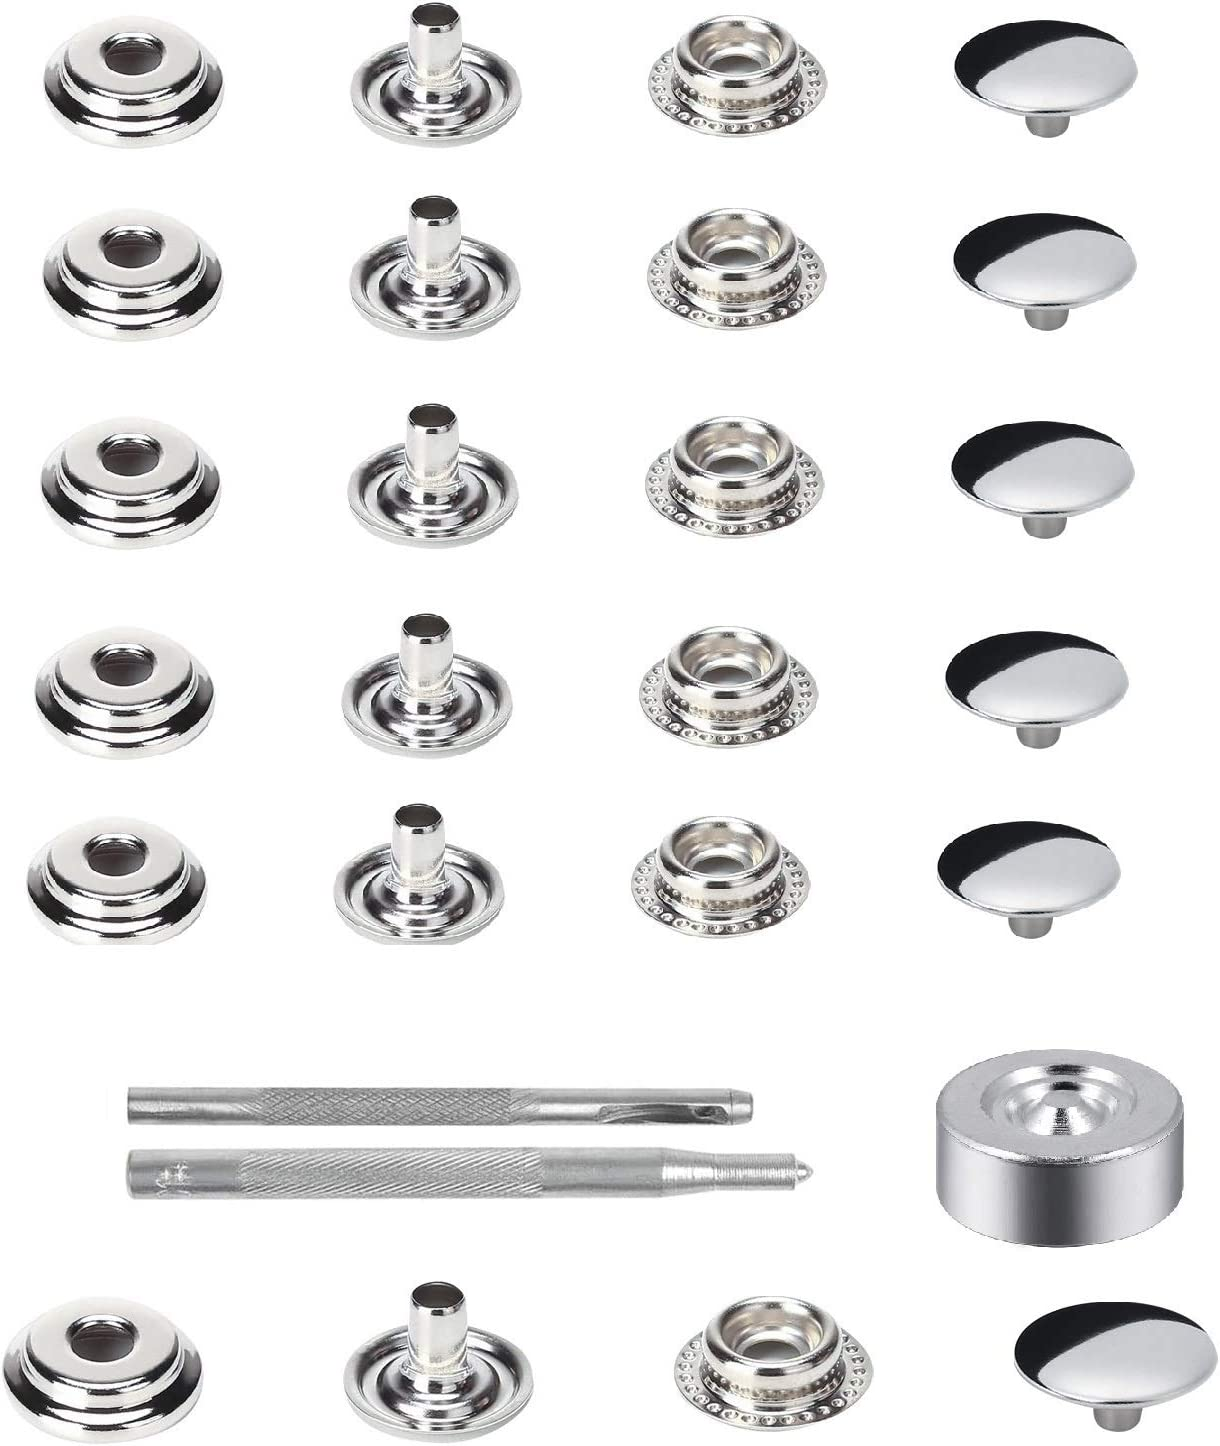 Laviesto Snap Fastener Kit, 200pcs Stainless Steel Snap Button Press Stud Cap with 3 Setting Tools for Bag Leather Craft Sewing(15mm)